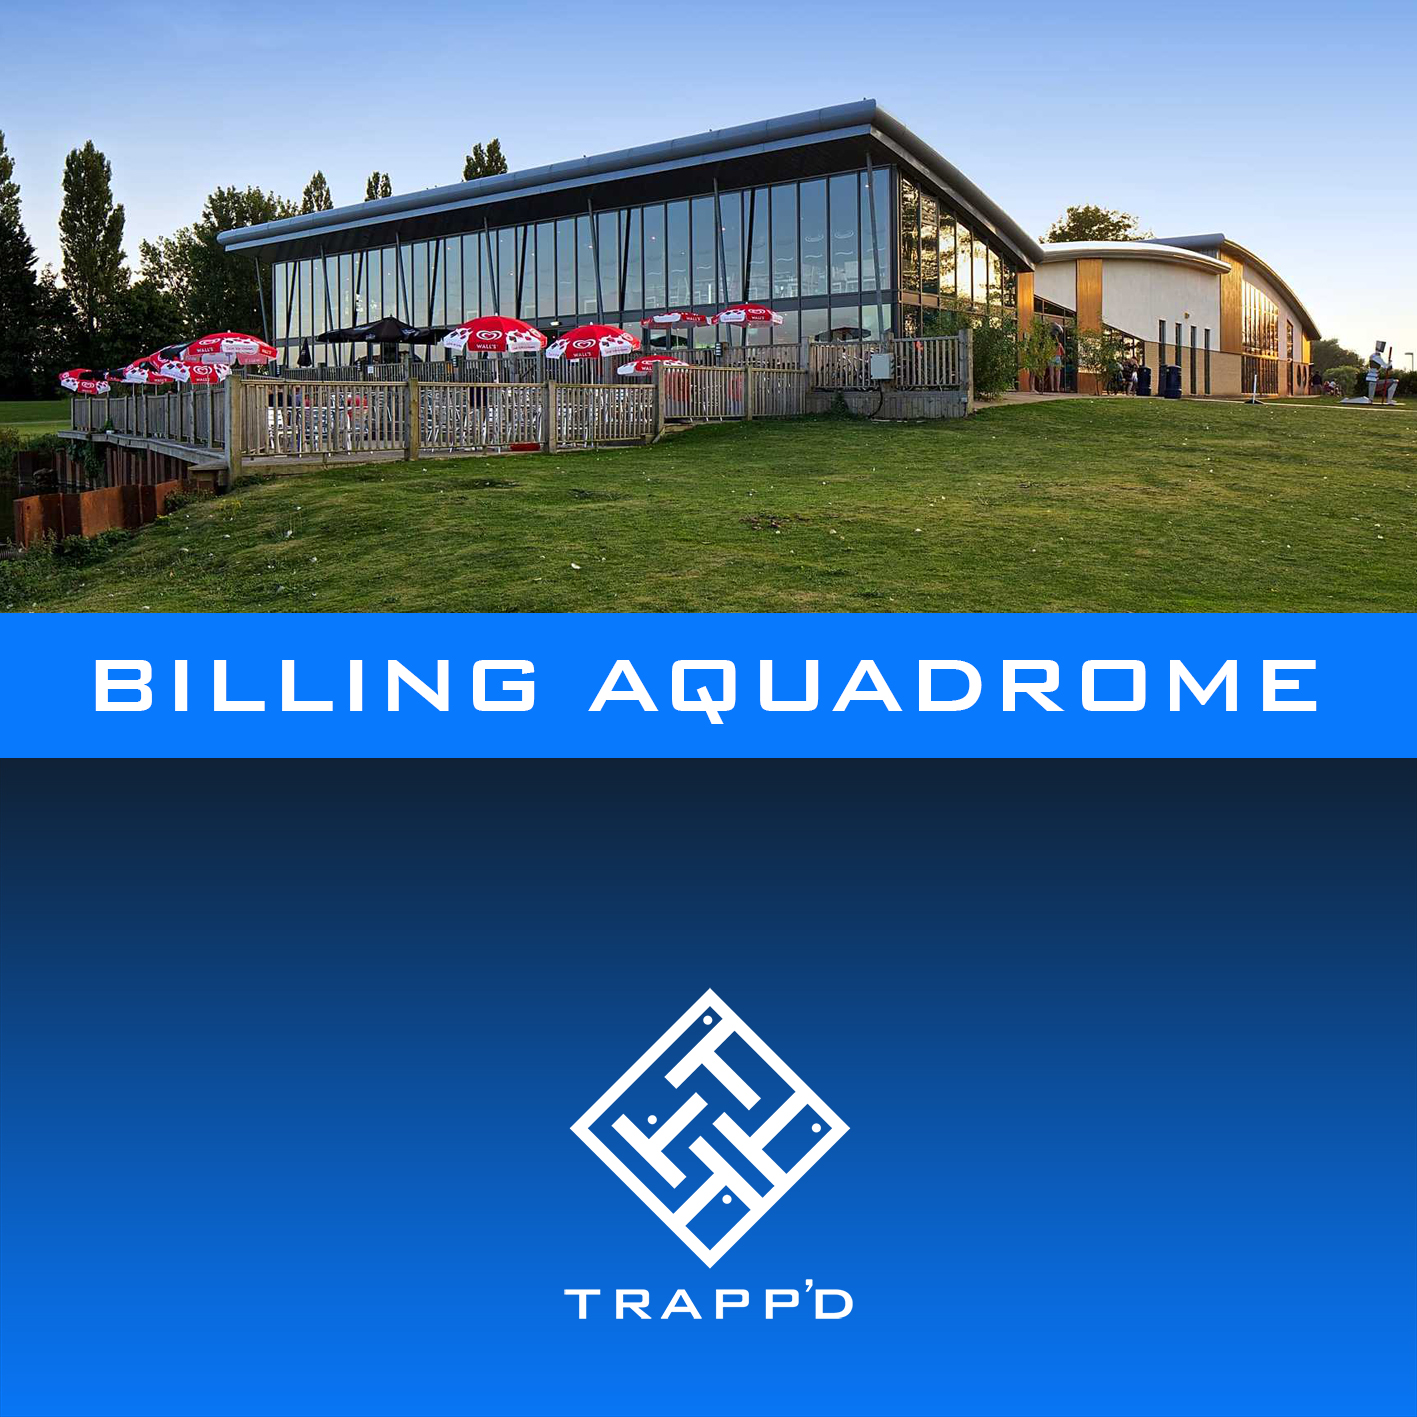 Trappd Billing Aquadrome